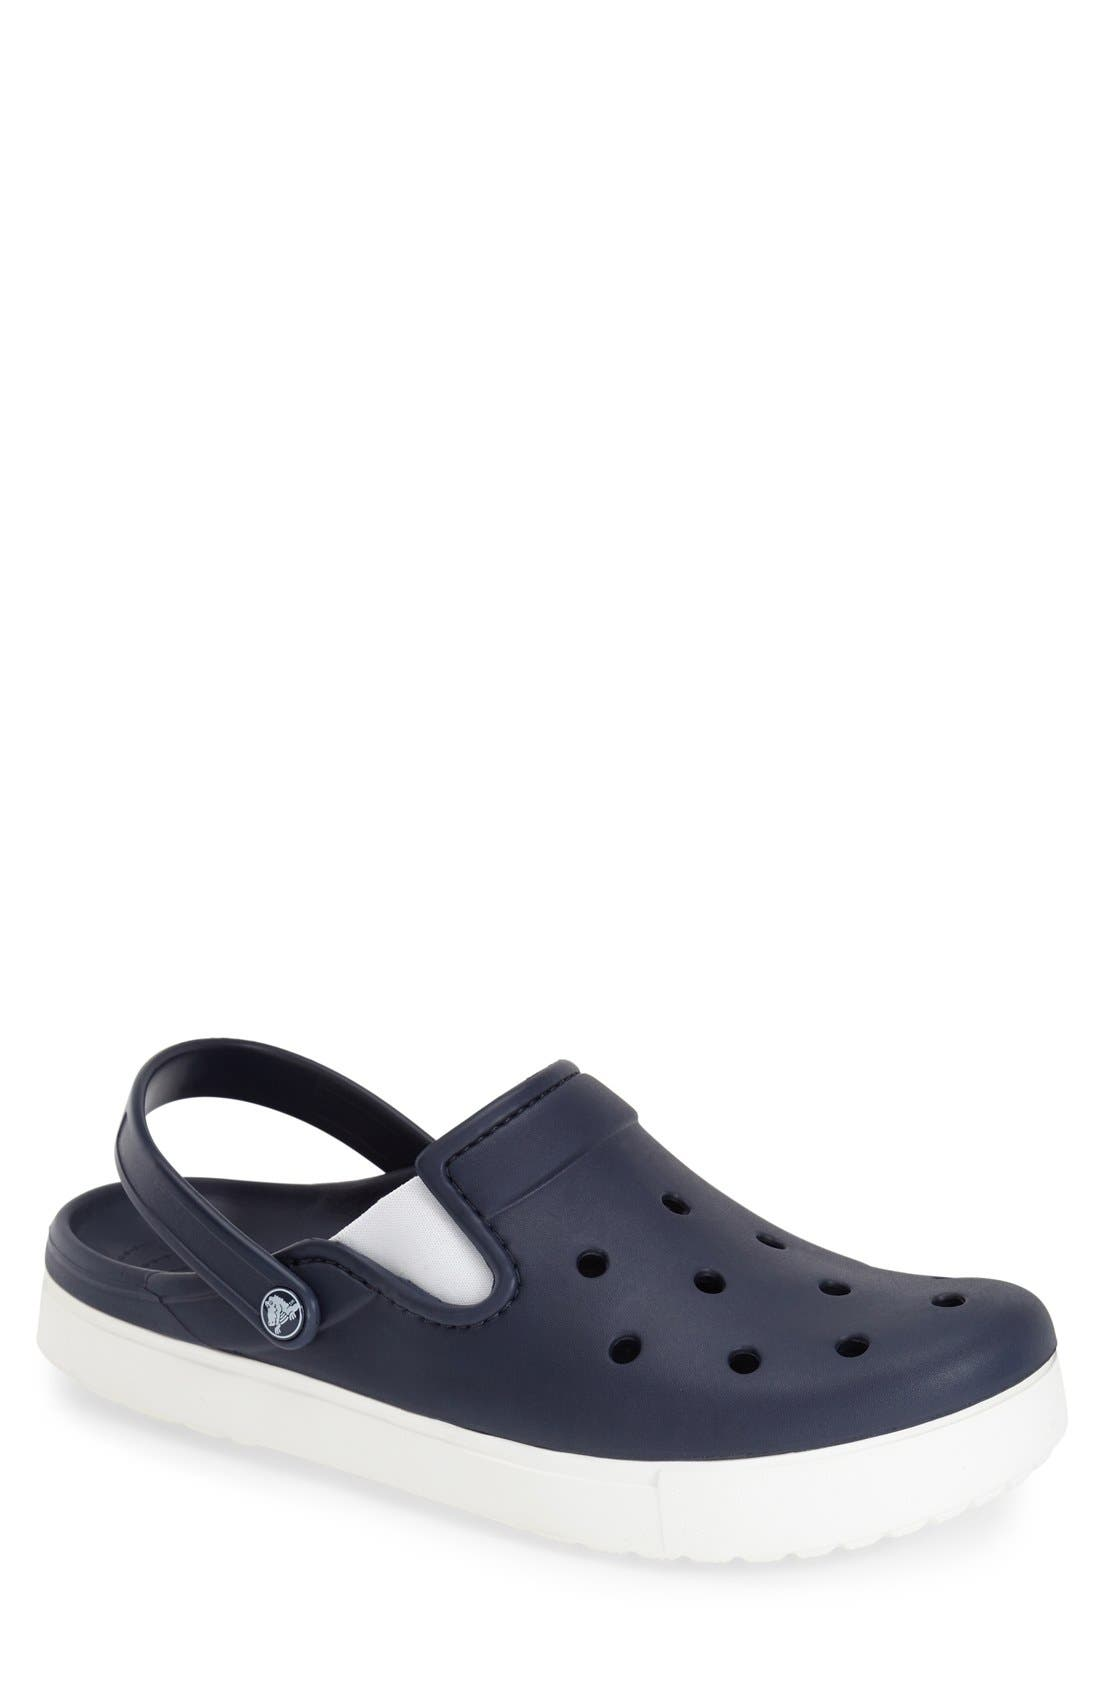 CROCS™ 'Citilane' Clog